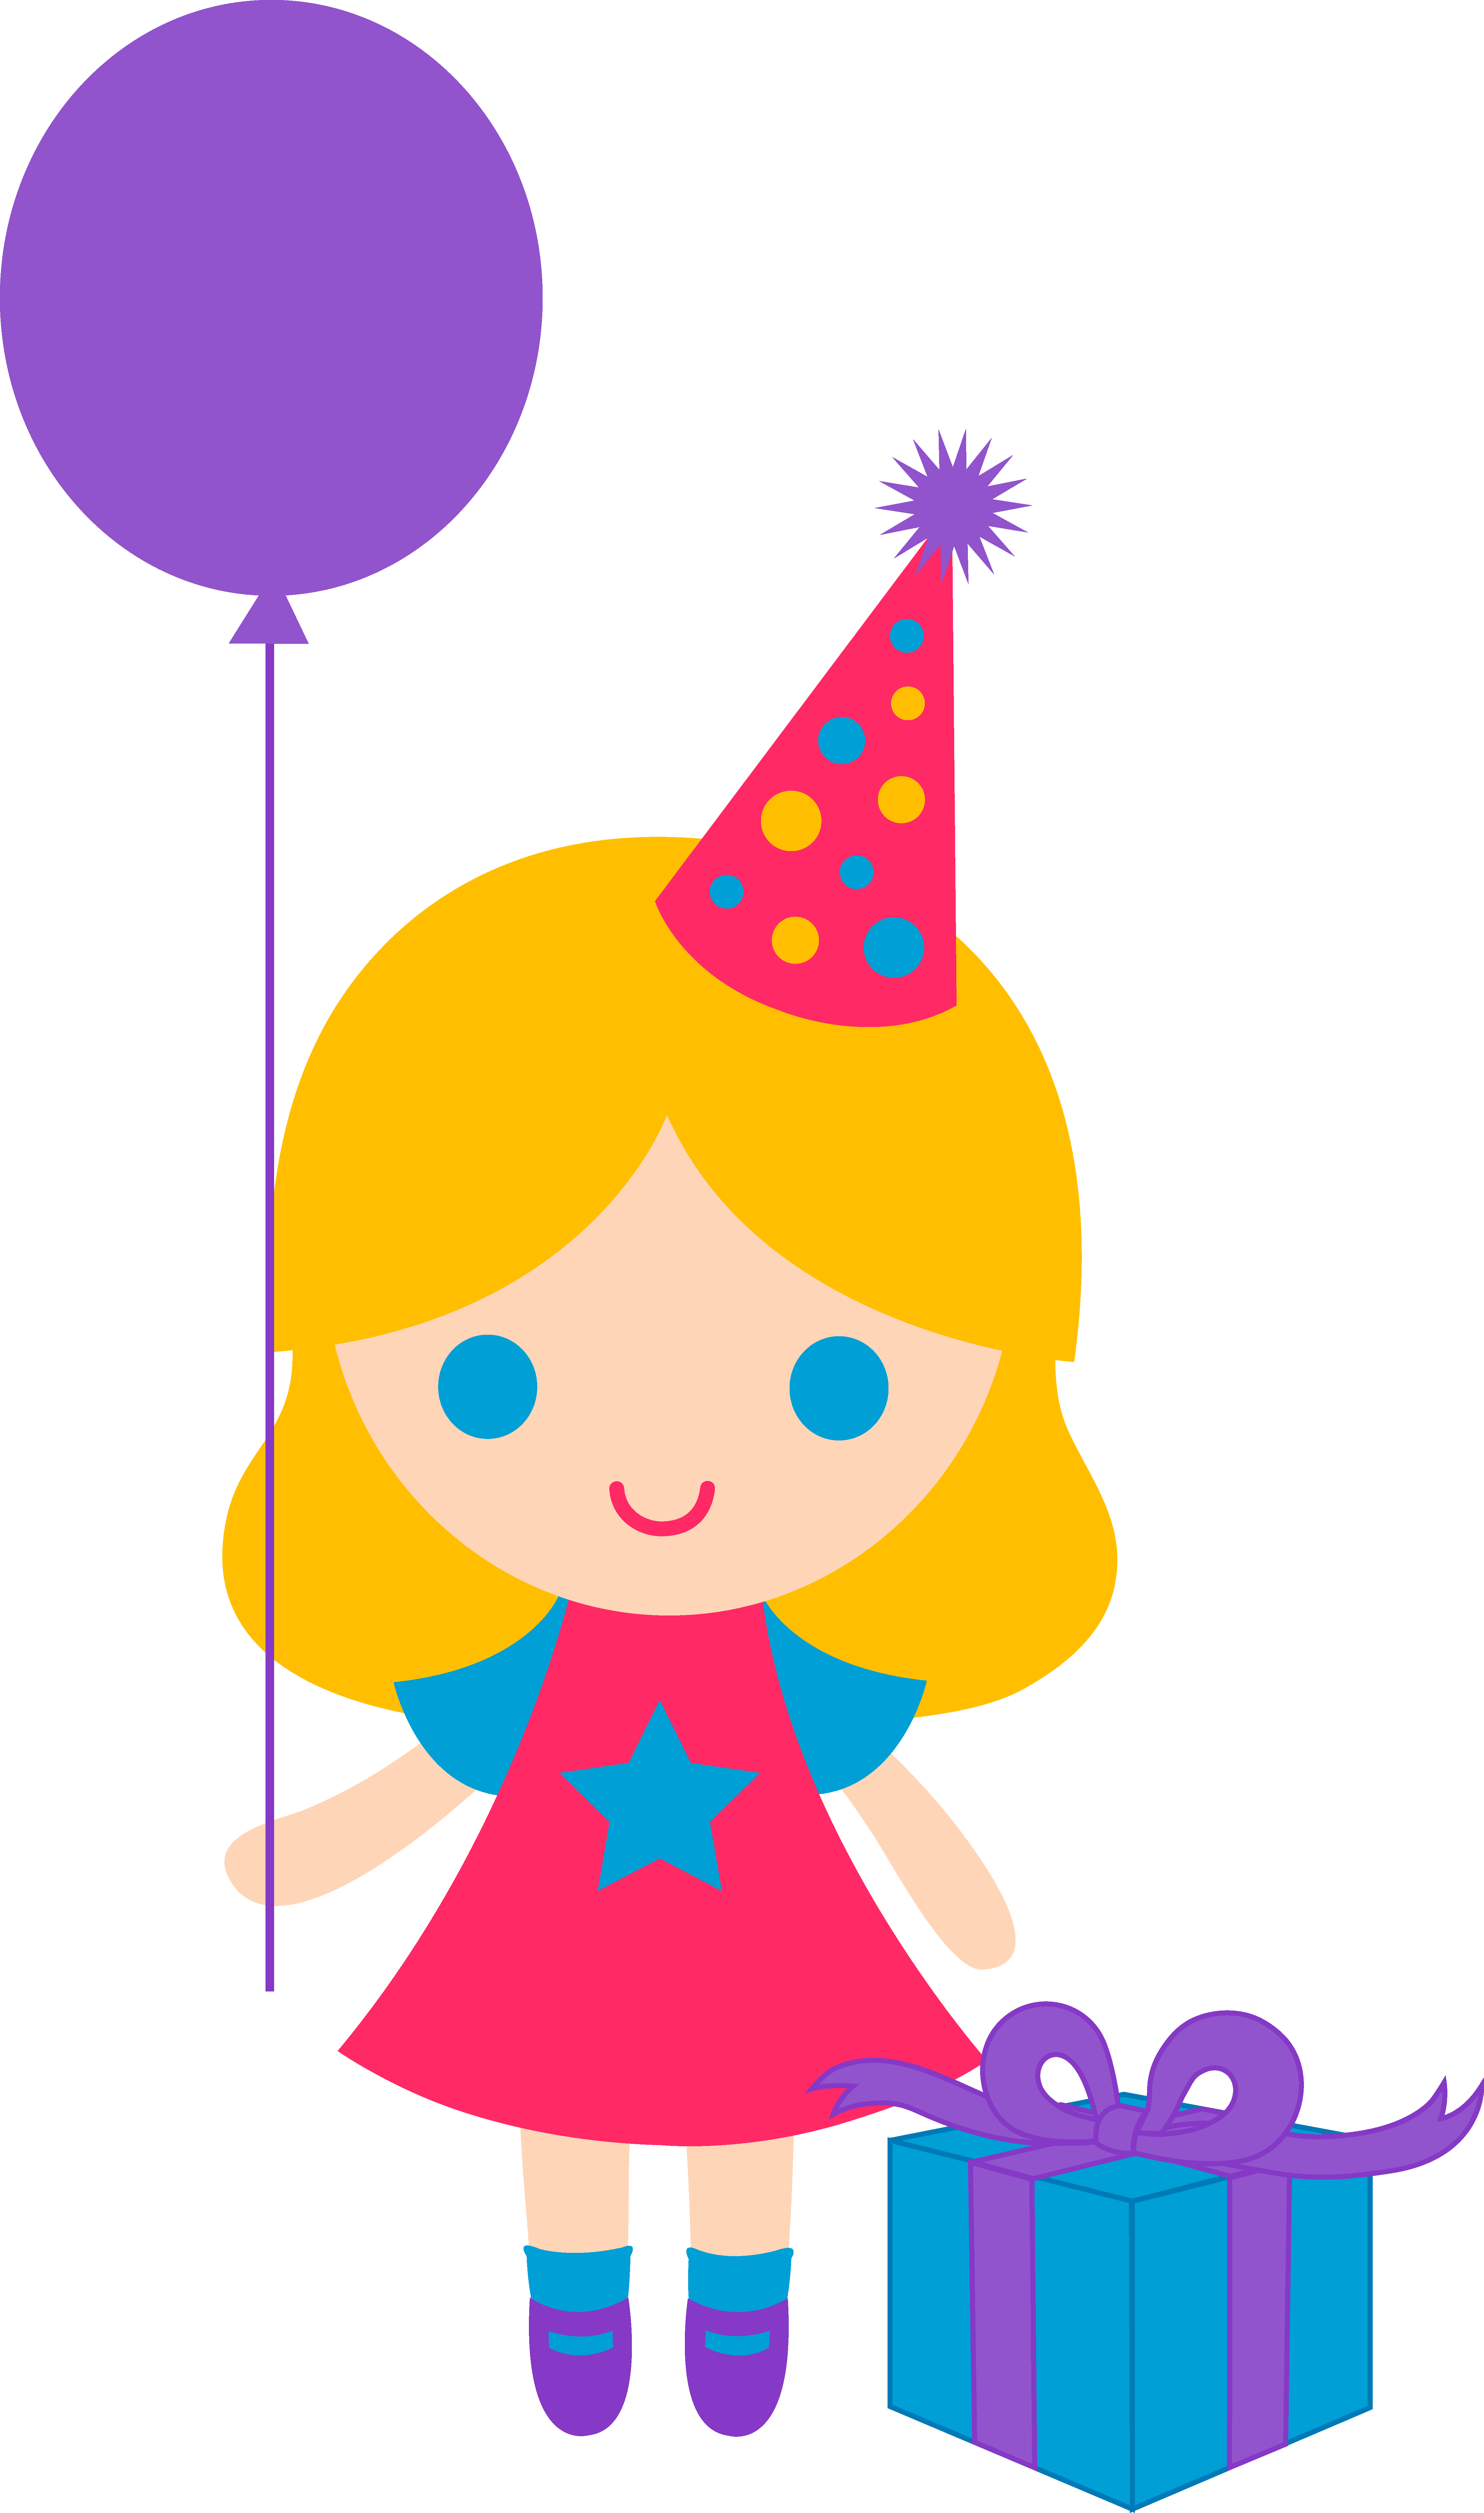 Party girl clipart clipart black and white library Happy Birthday Boy Clipart | Free download best Happy Birthday Boy ... clipart black and white library